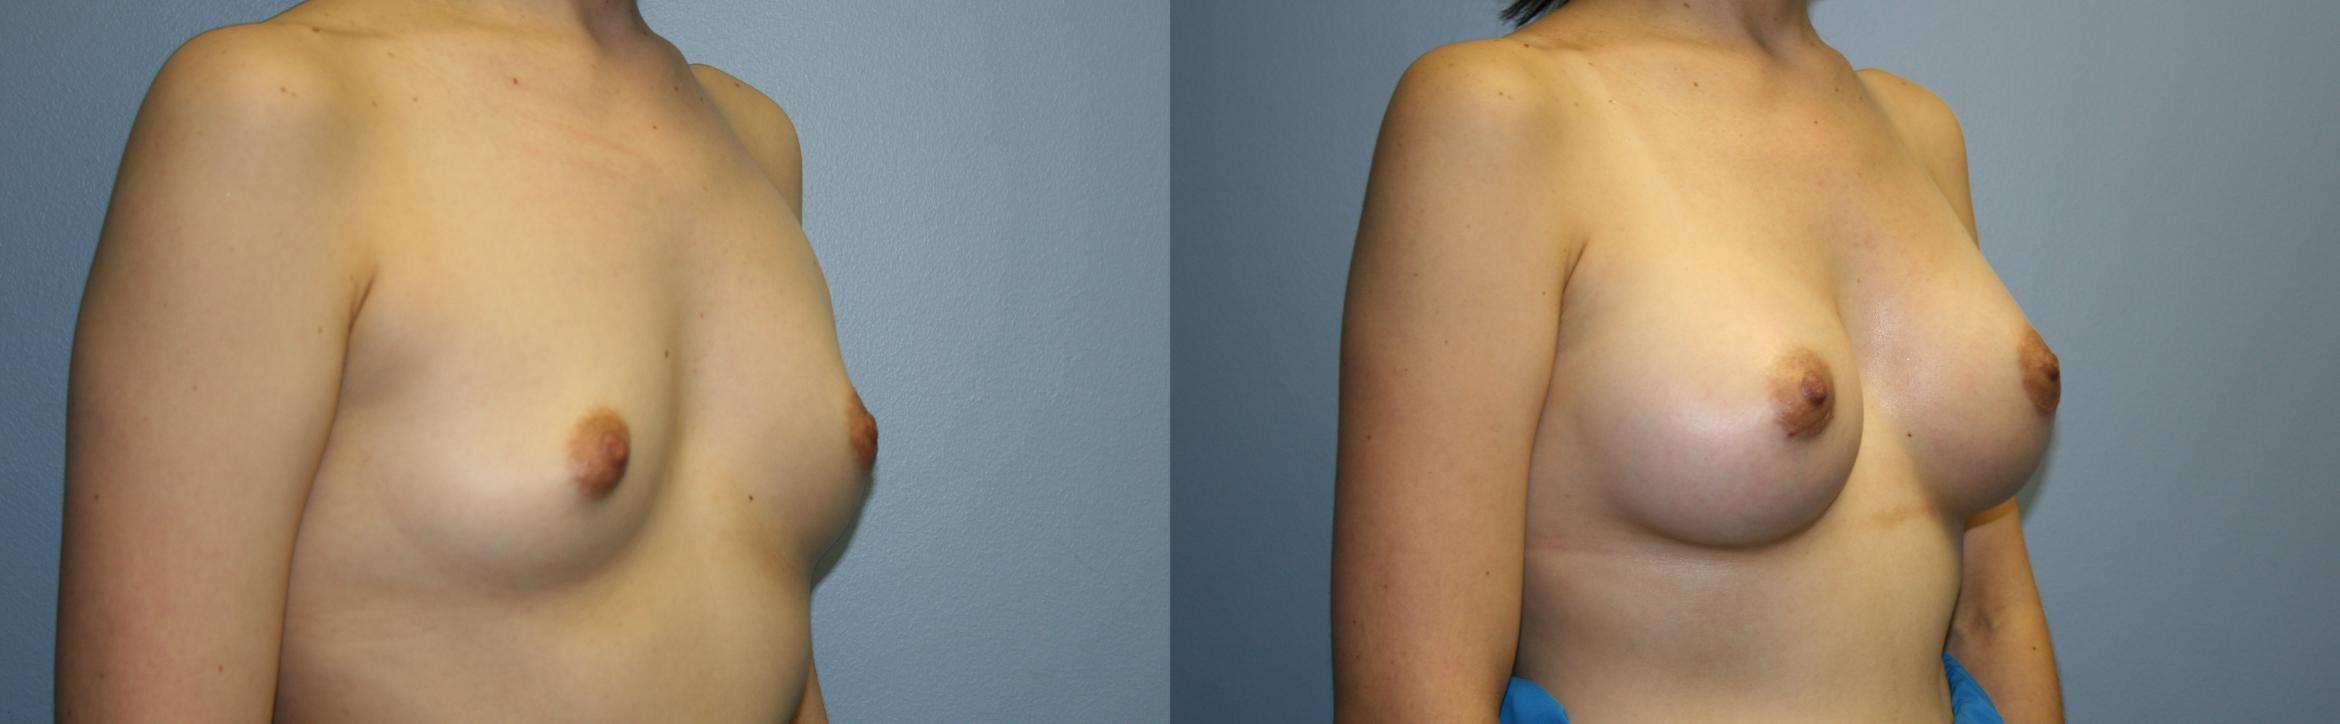 Breast Augmentation Case 33 Before & After View #2 | Downers Grove, IL | Dr. Sandeep Jejurikar